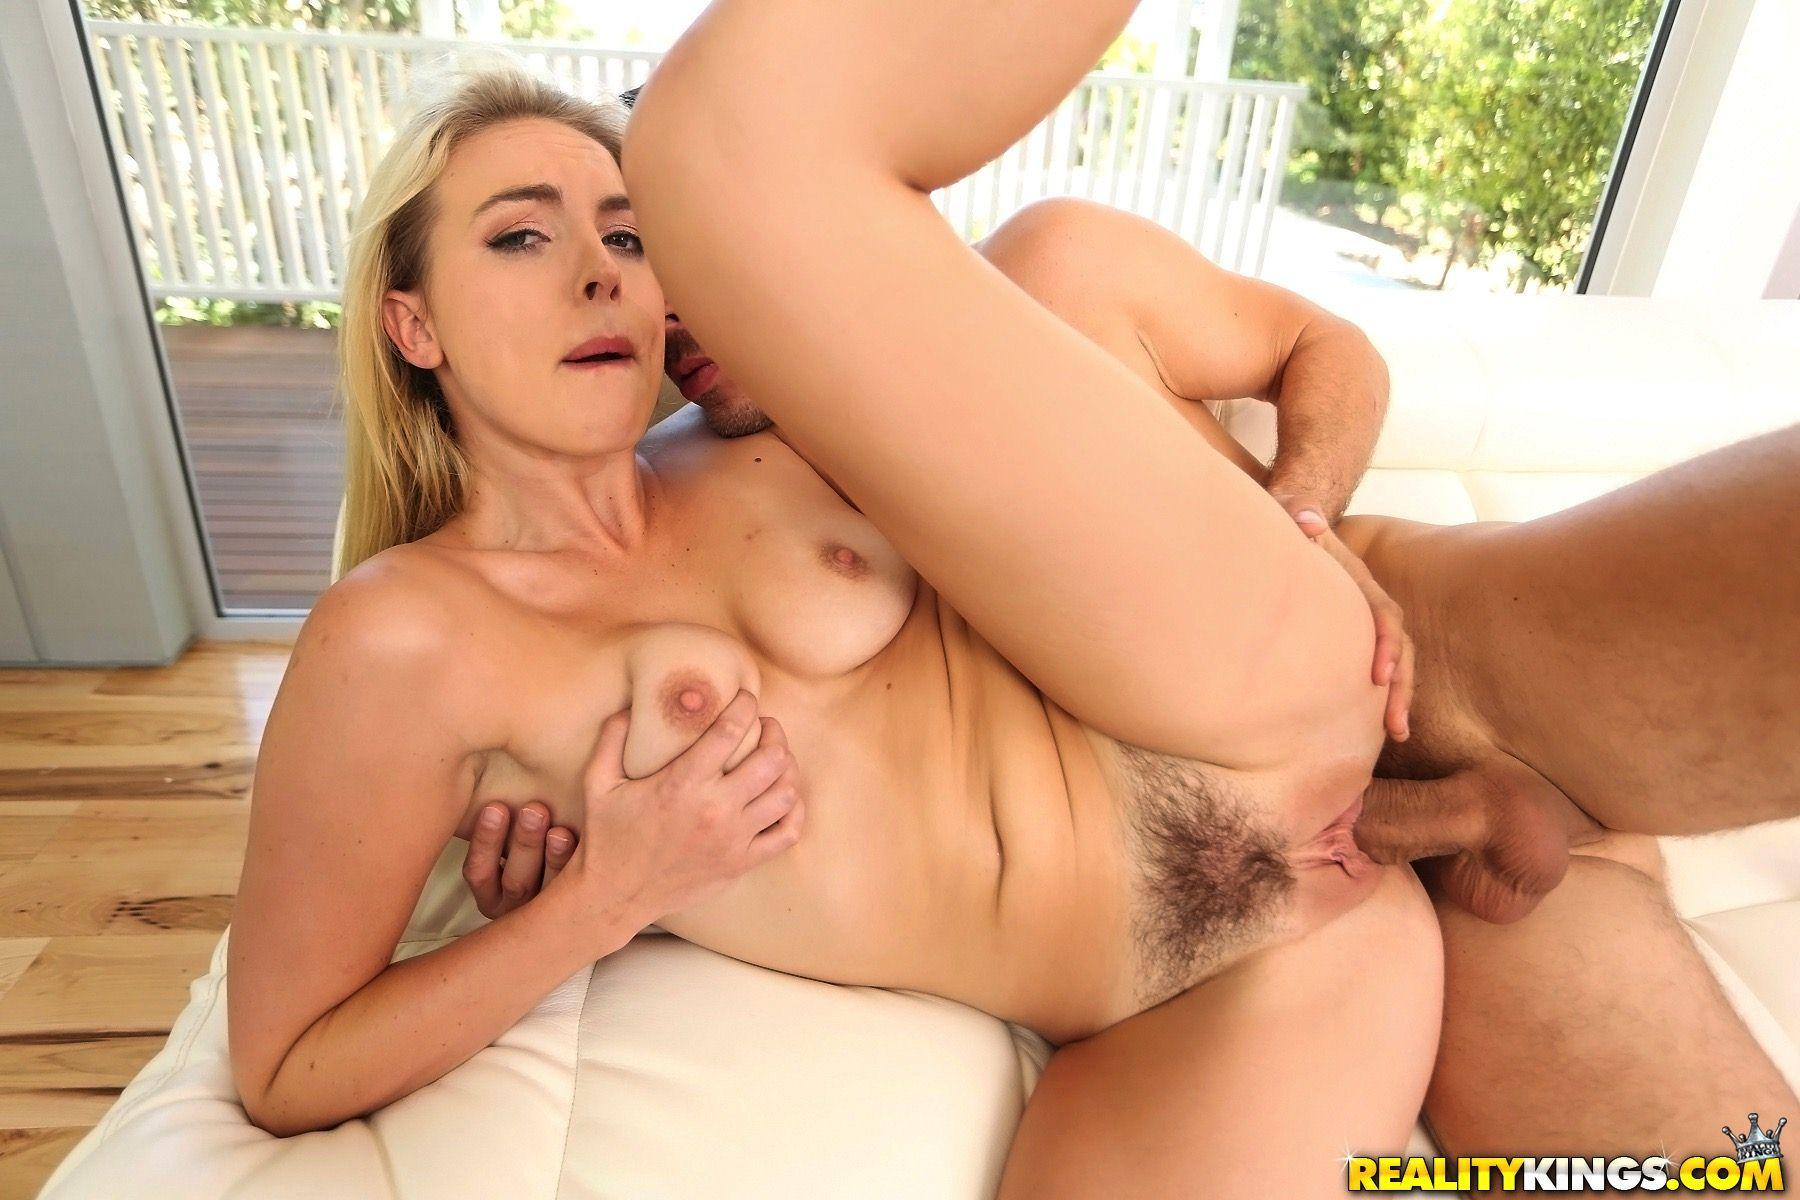 Cosima knight gets a deep creampie